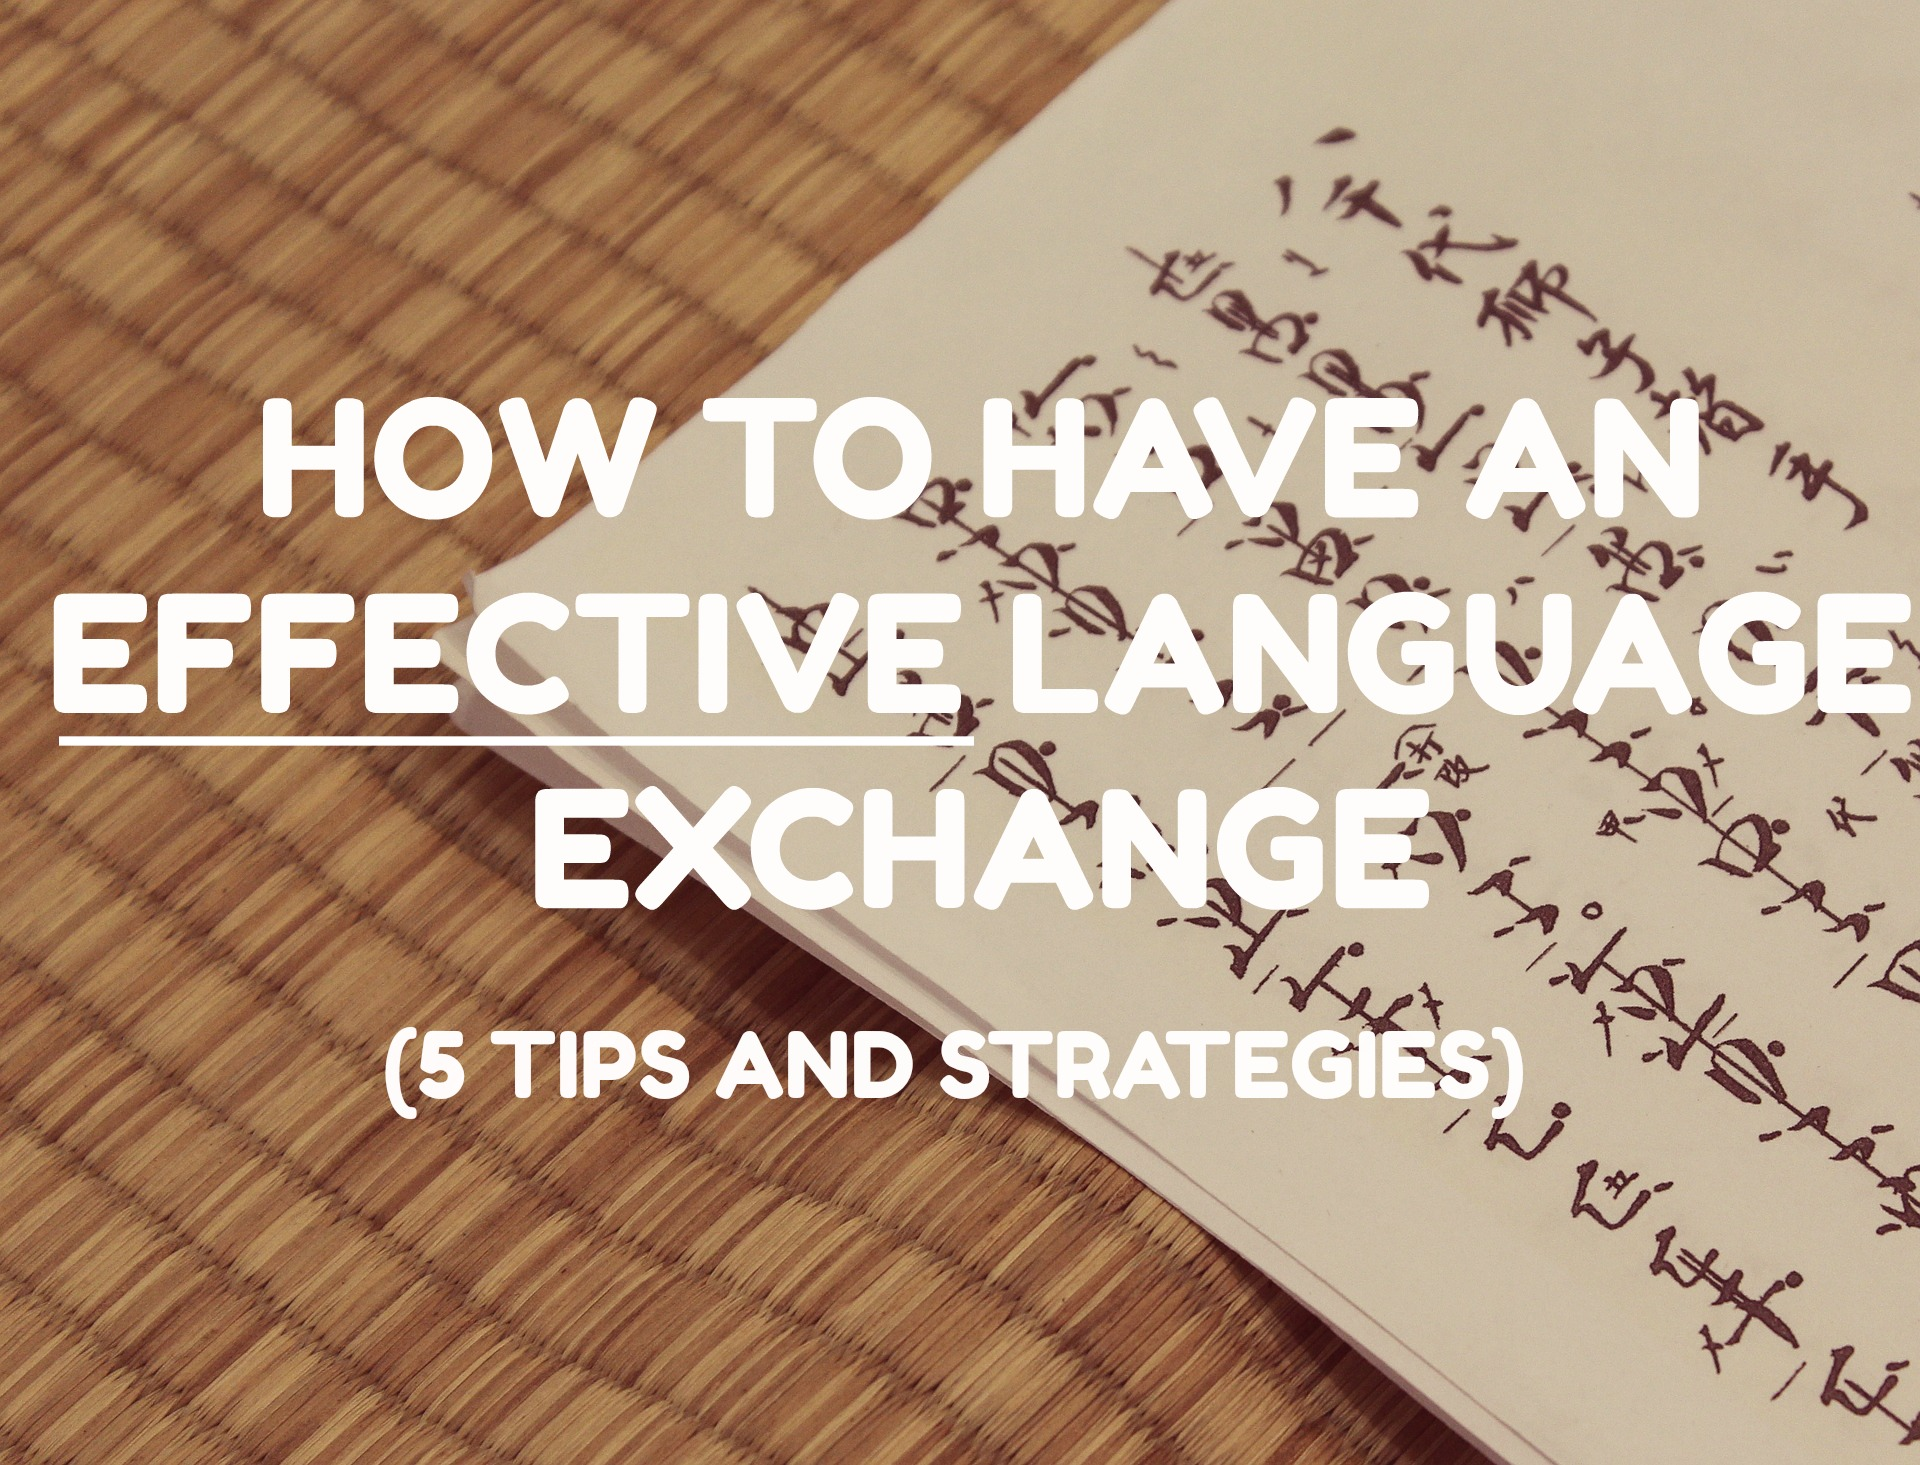 How To Have An EFFECTIVE Language Exchange (5 Tips And Strategies)